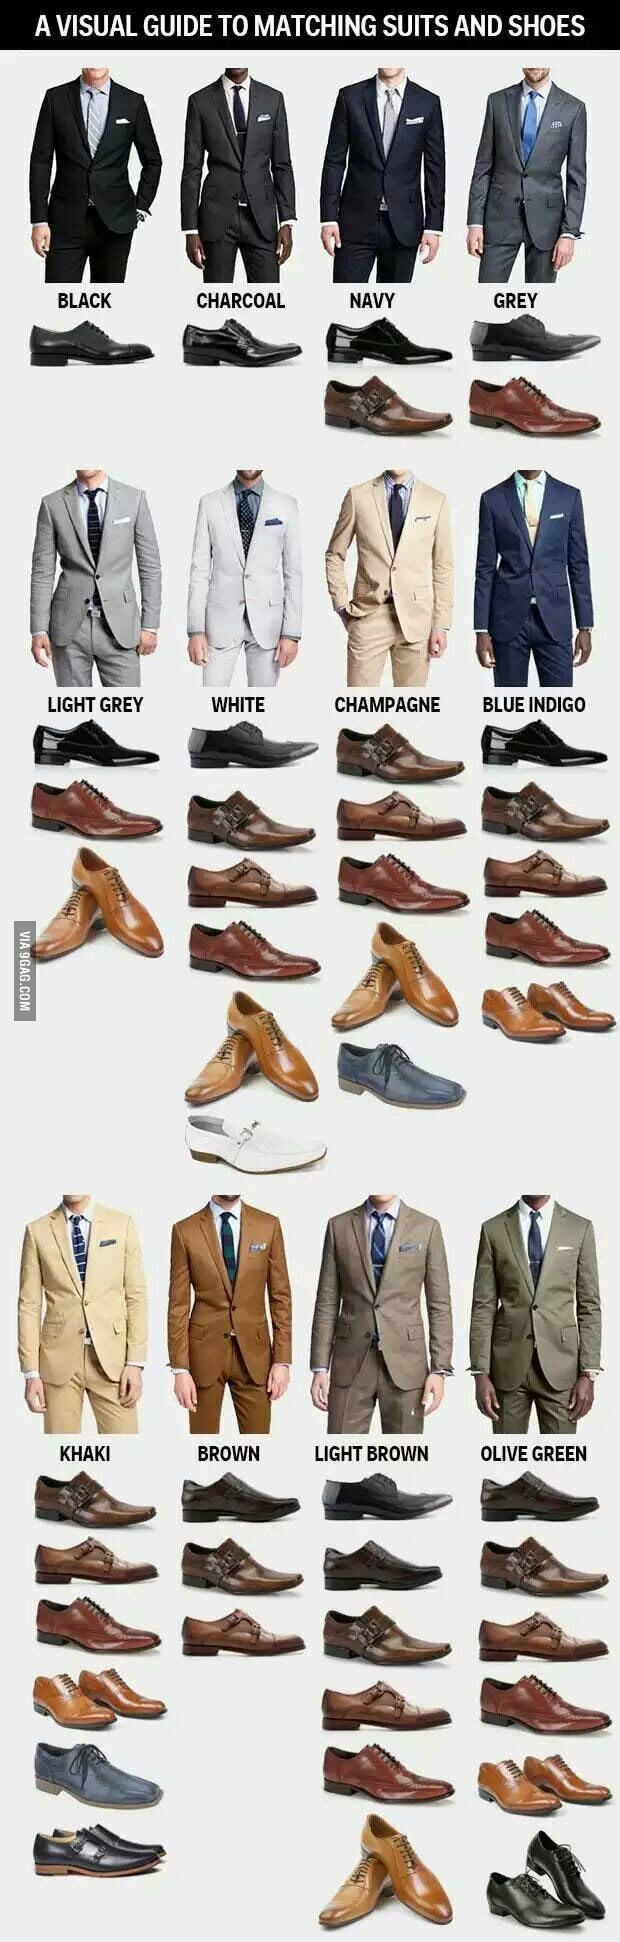 visual guide to matching menswear suits colors accessories